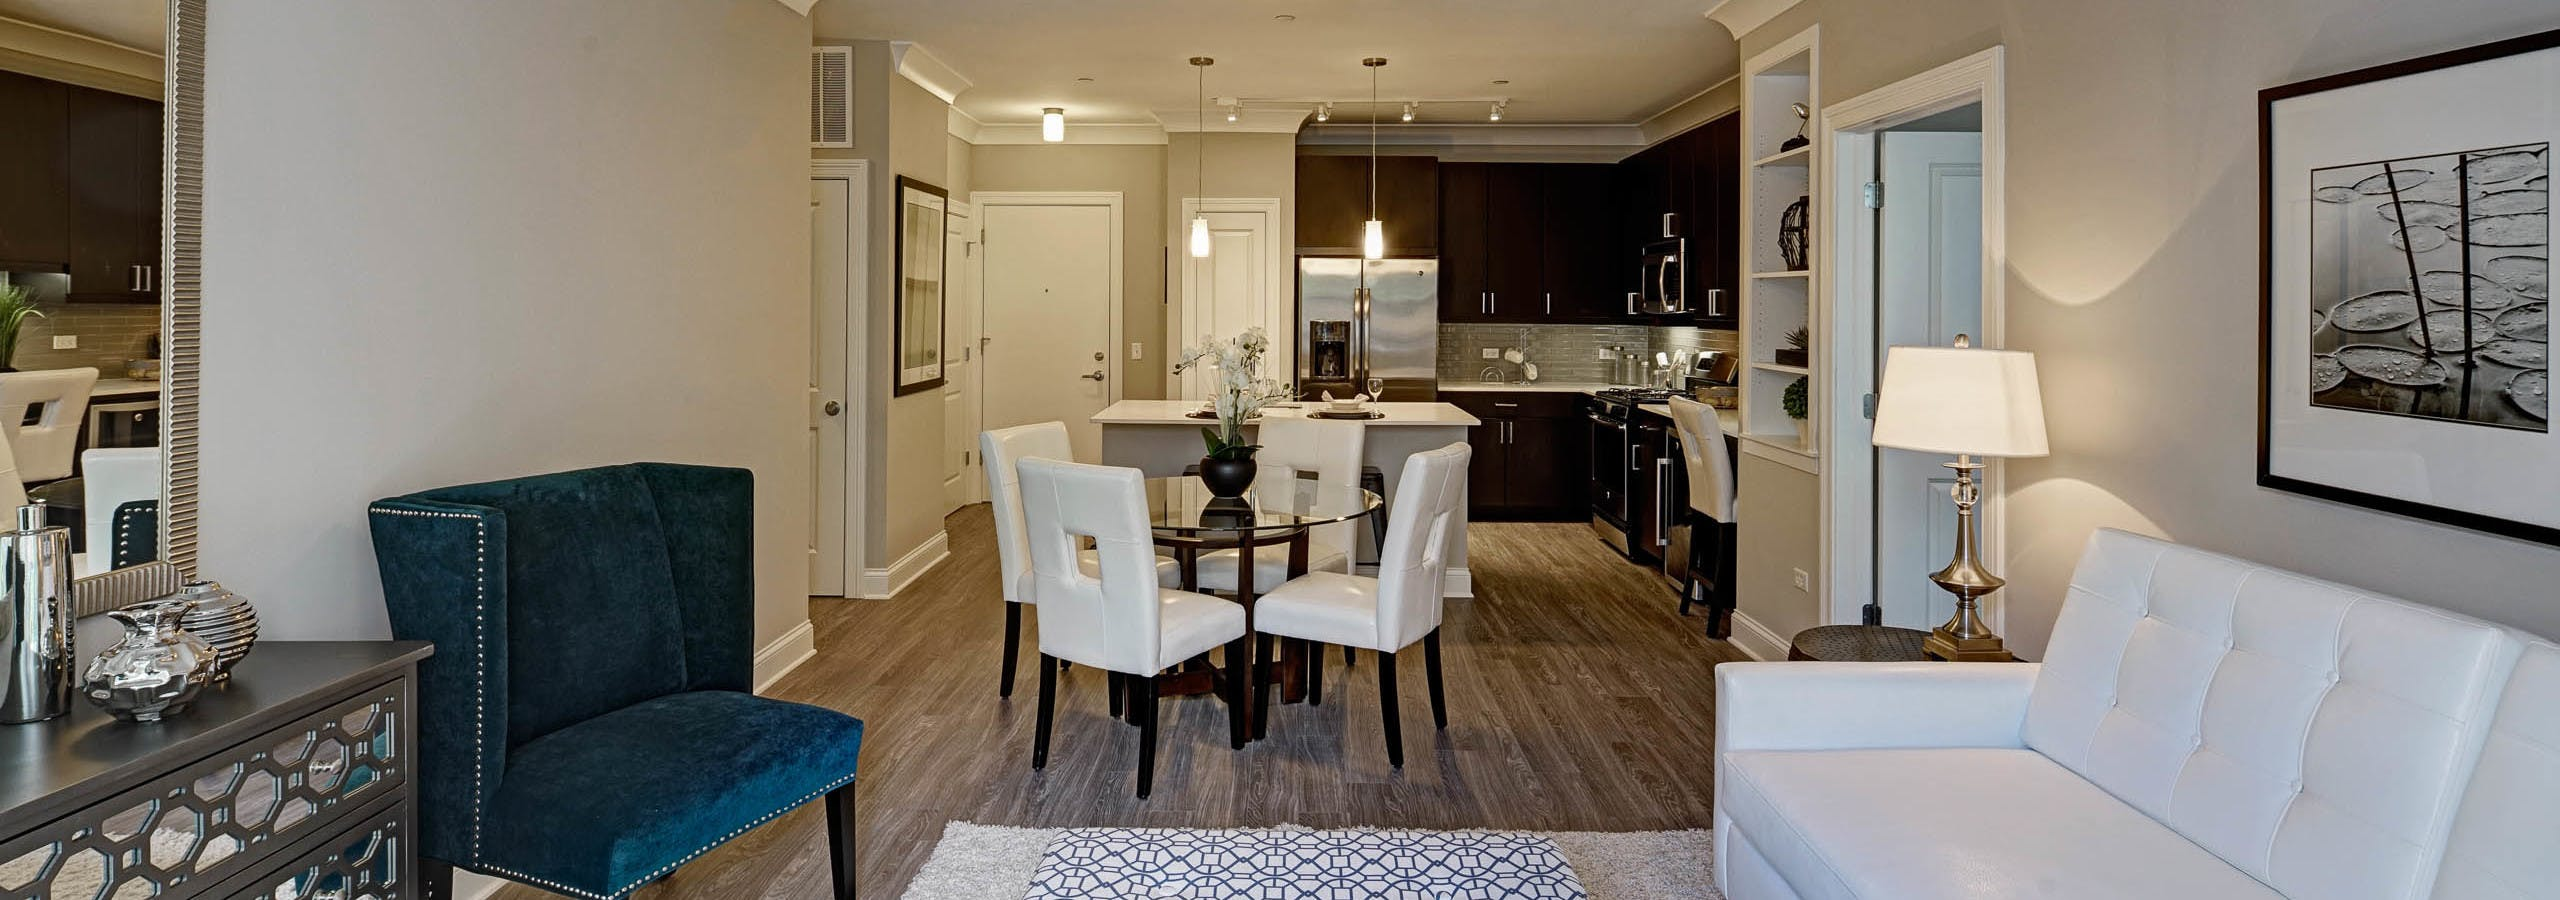 Living & dining rooms and kitchen